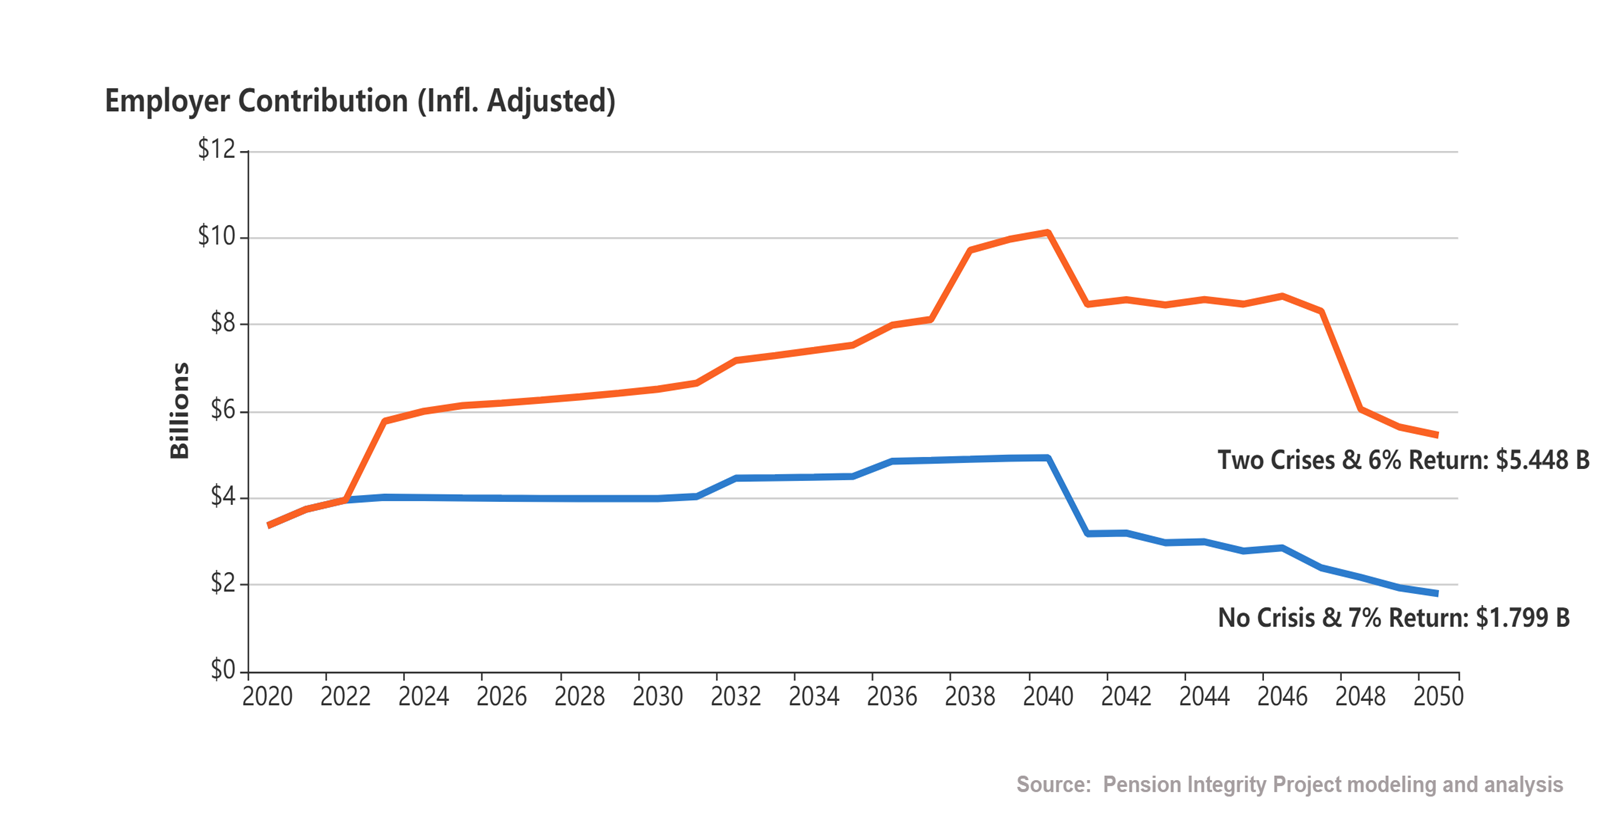 Analysis of Florida's Pension Investment Performance and Future Outlook Reveal Need for Reform